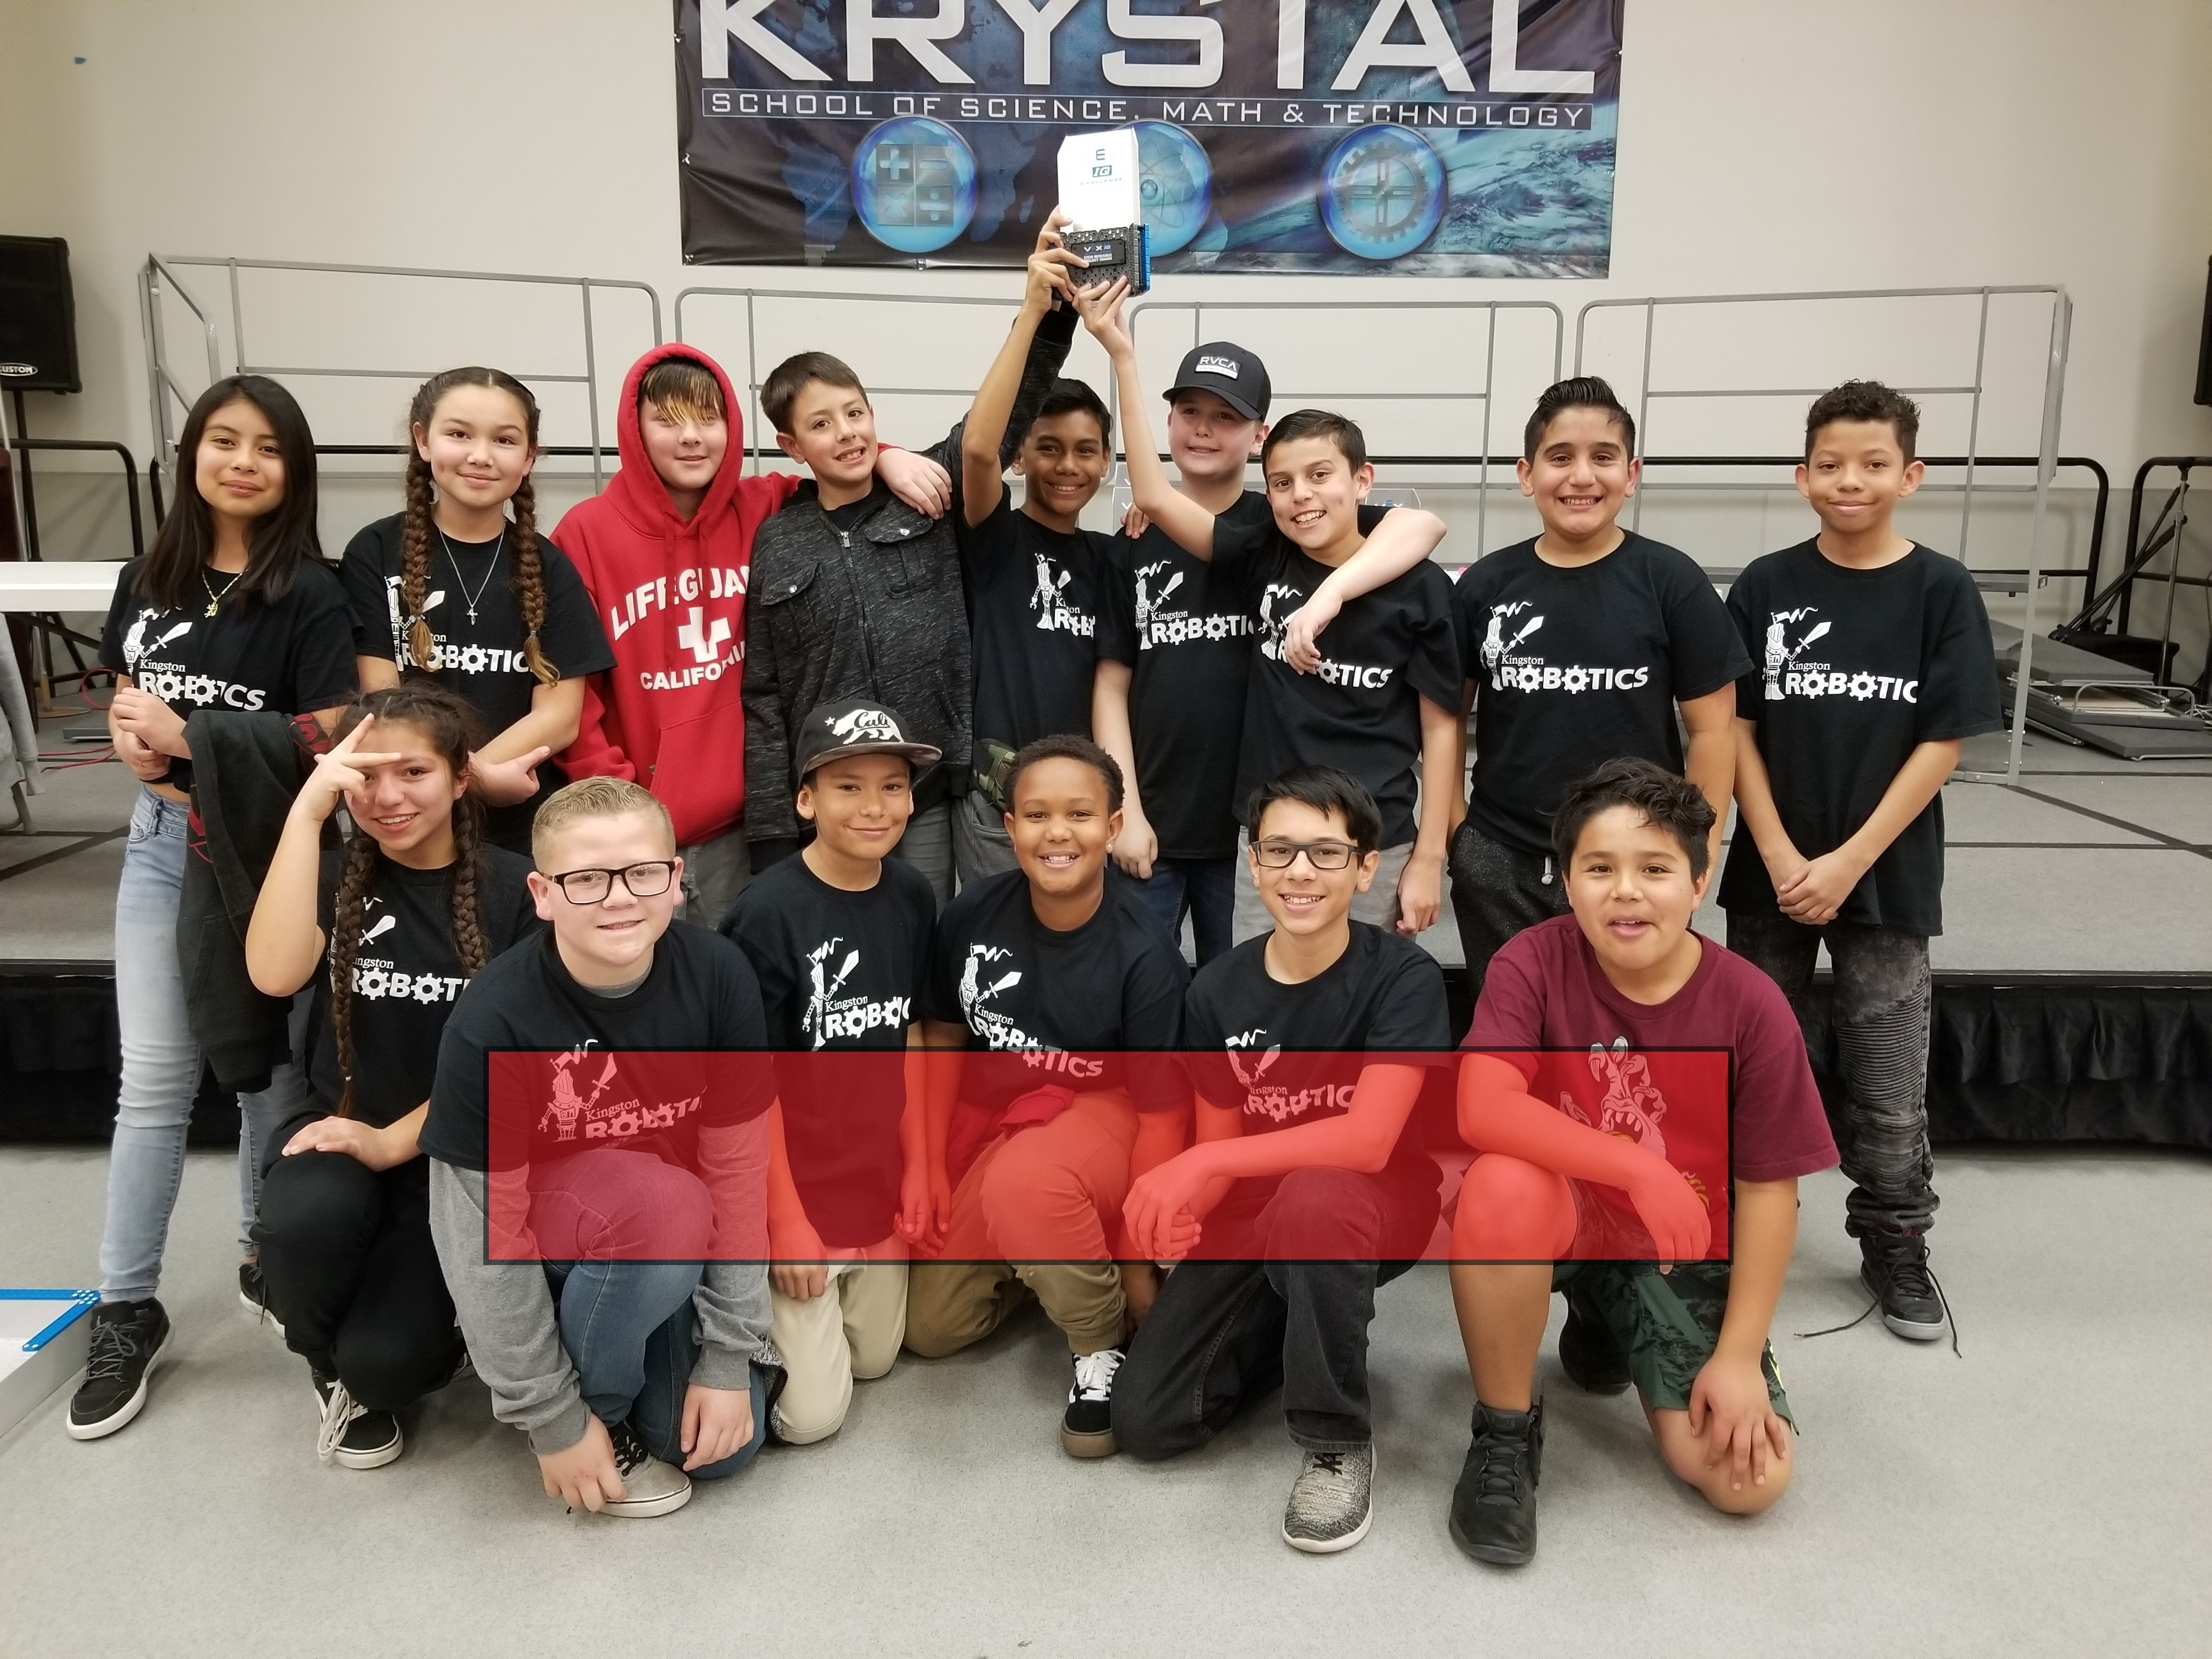 Kingston Robotics Holding Trophy